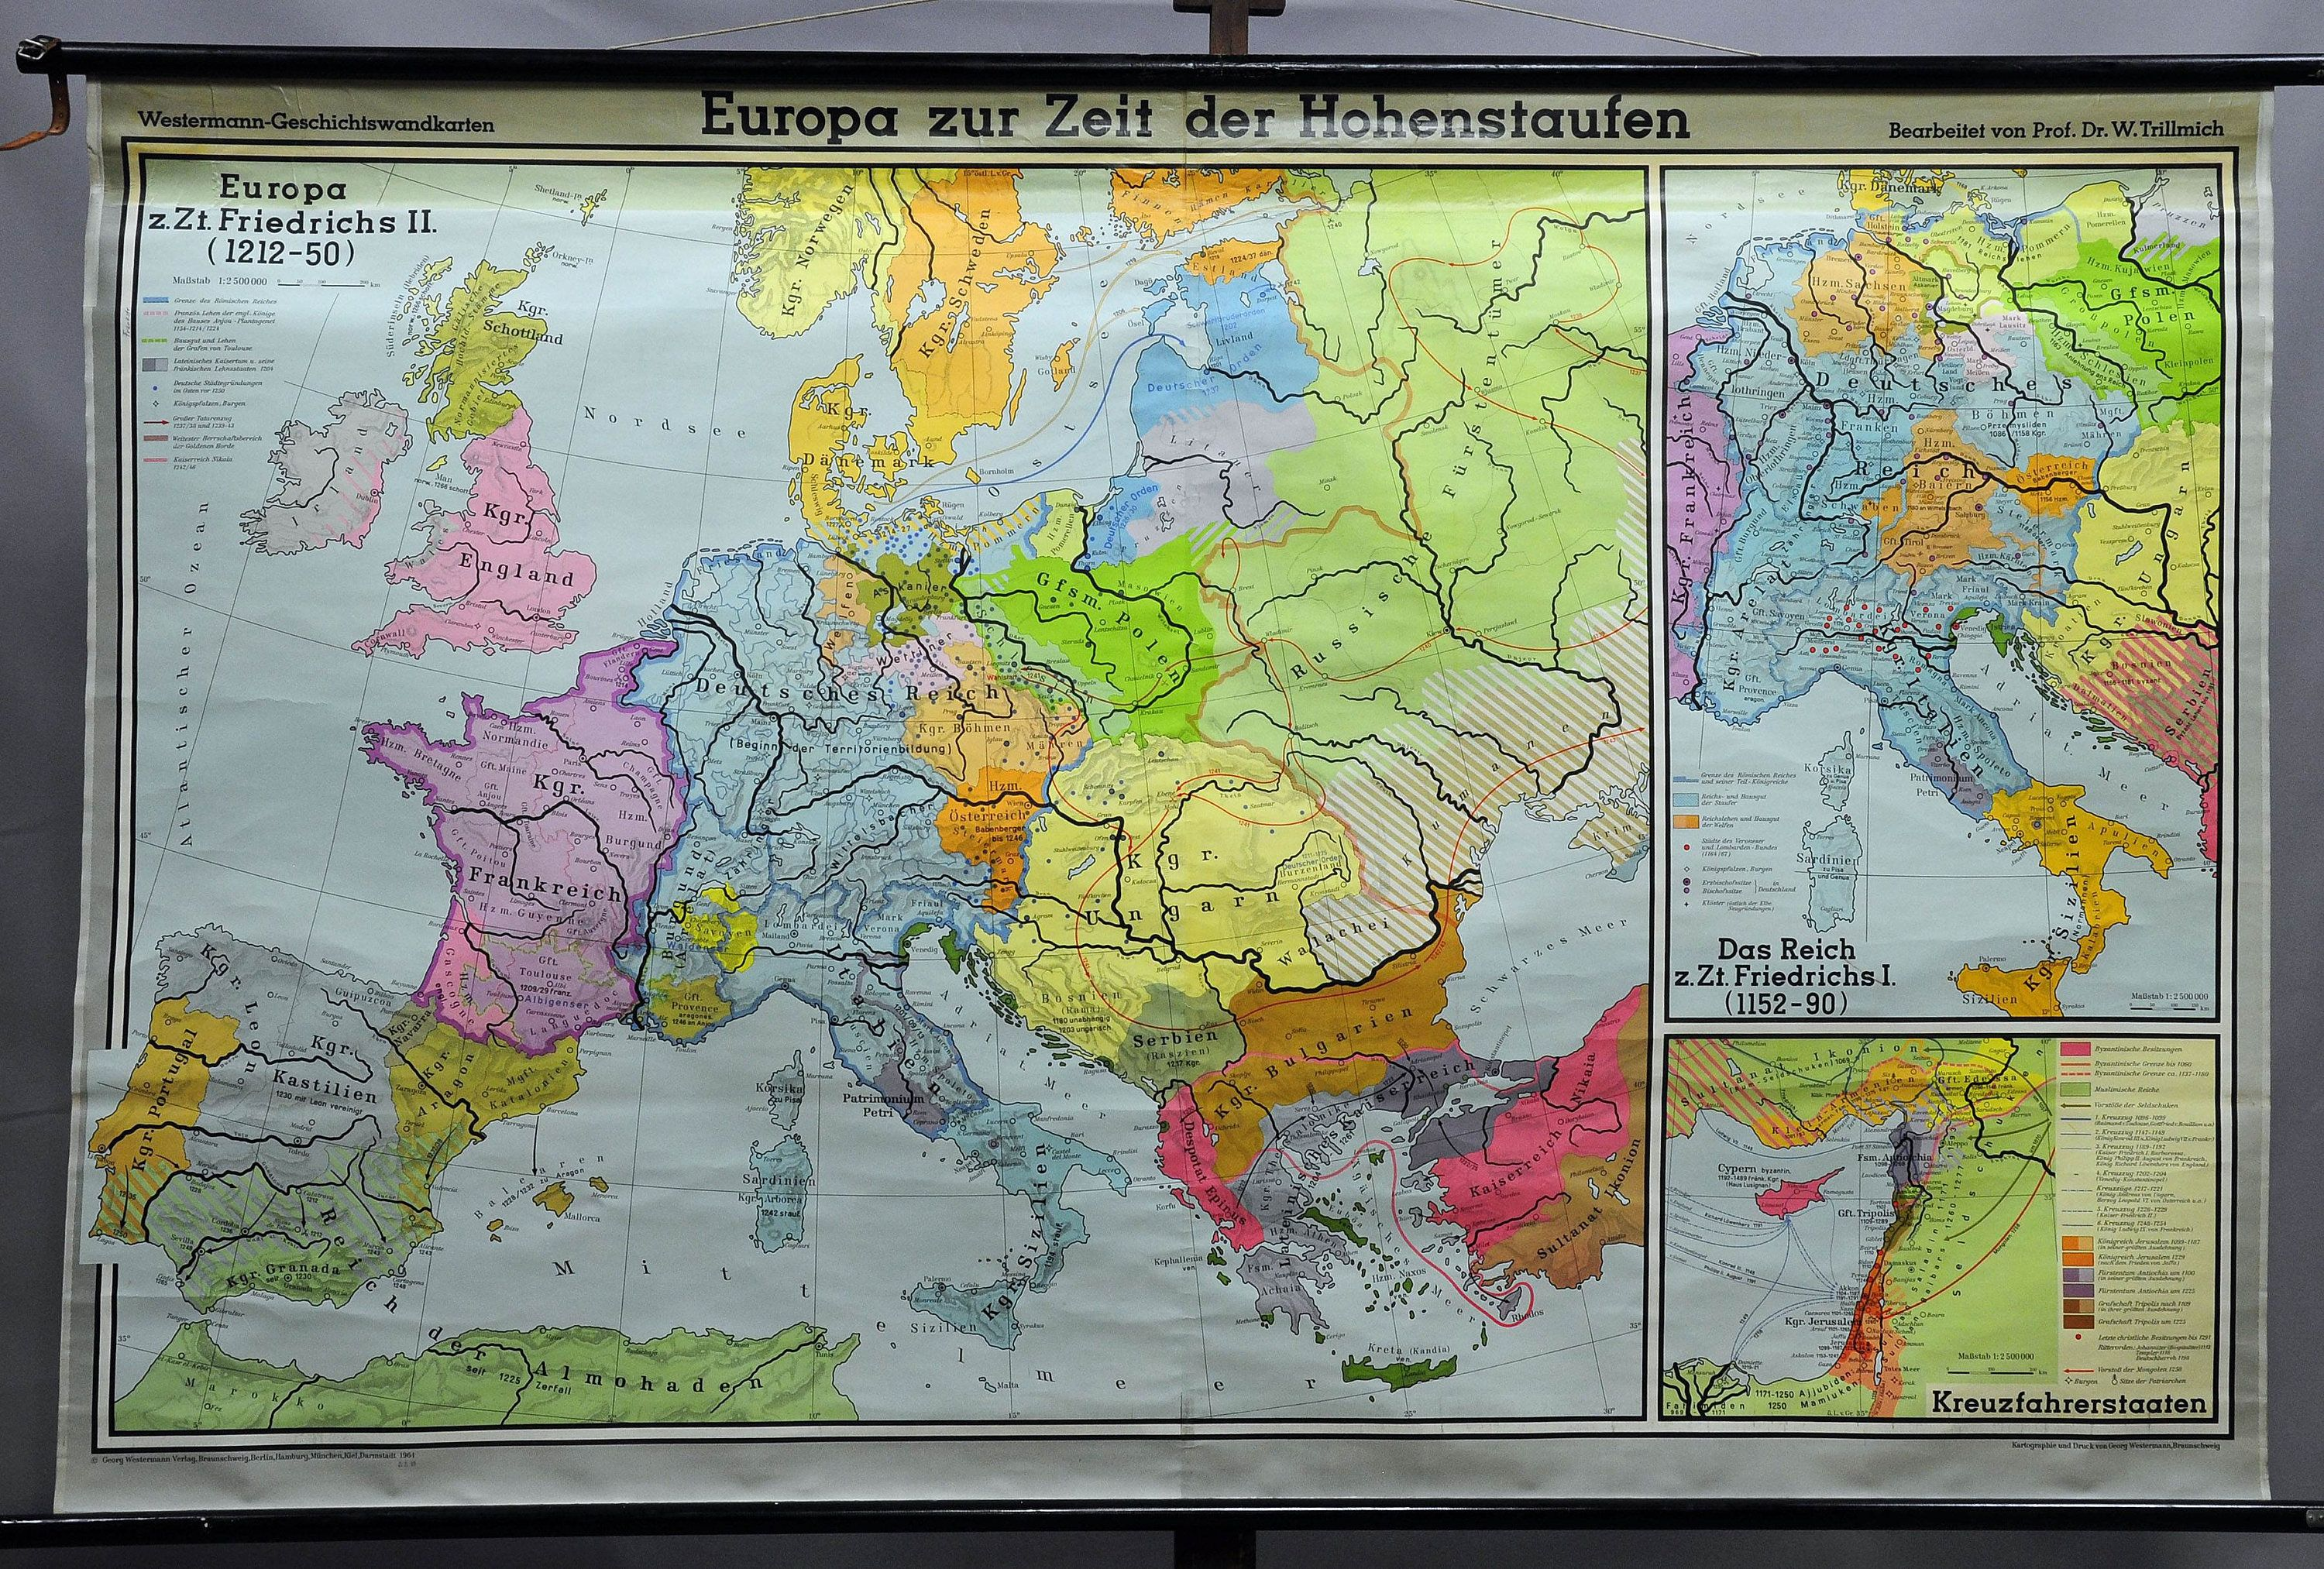 Map Of Wurope%0A old historical wall chart  map  Europe at the time of the Hohenstaufens